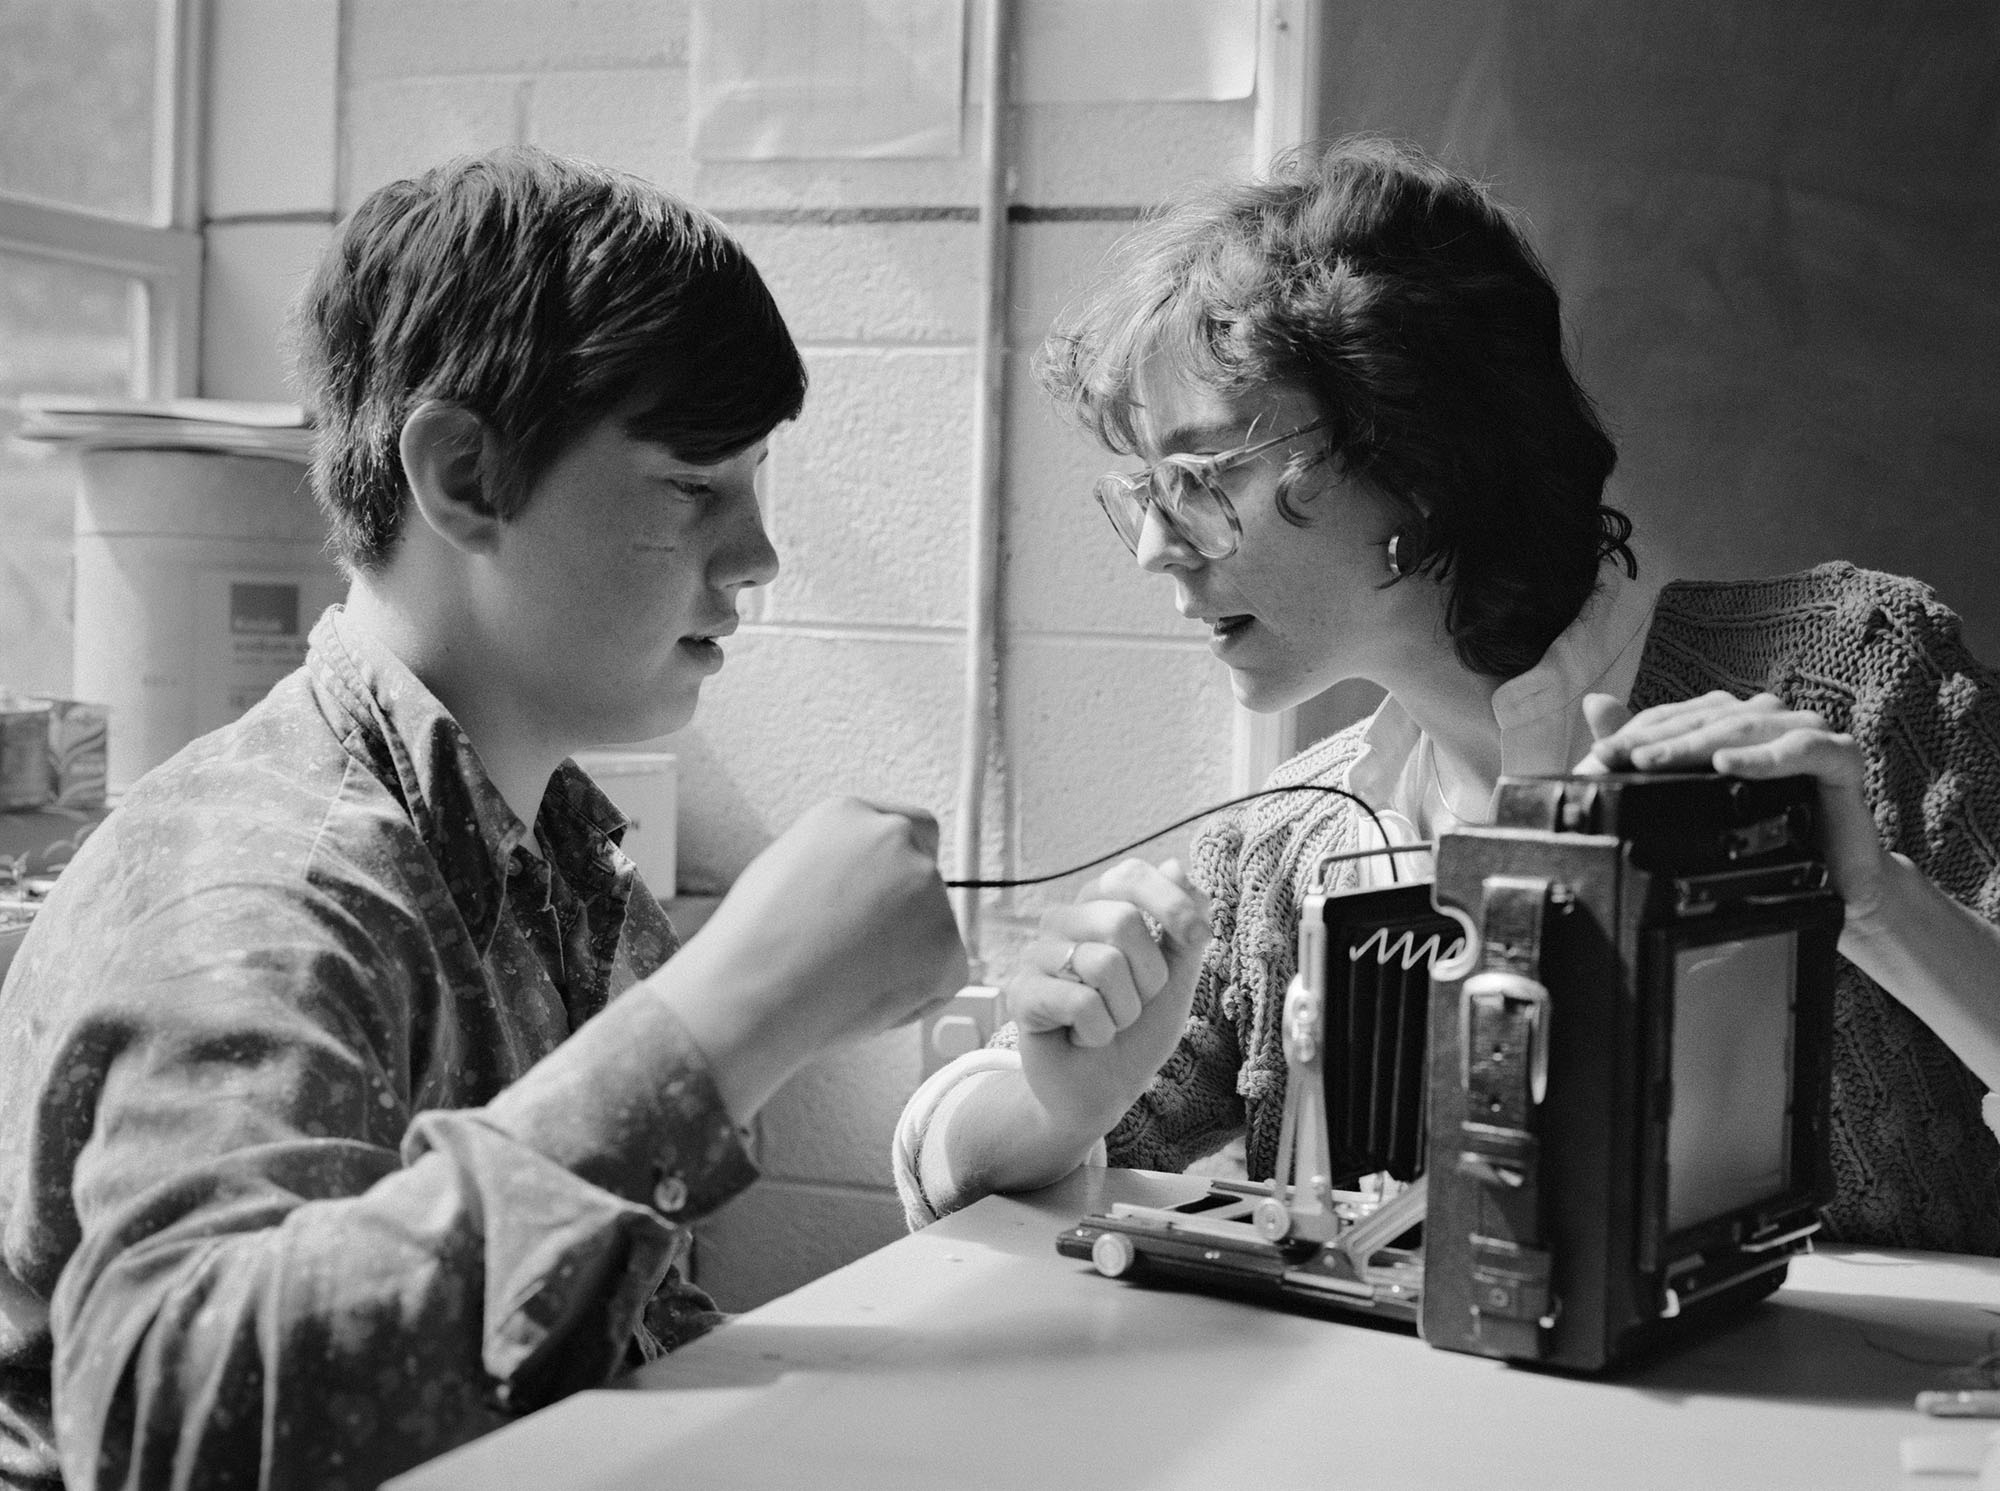 A black-and-white photograph of a boy holding a wire attached to an old camera while seated at a table next to his teacher, Wendy Ewald, who has her hand on the top of the camera.